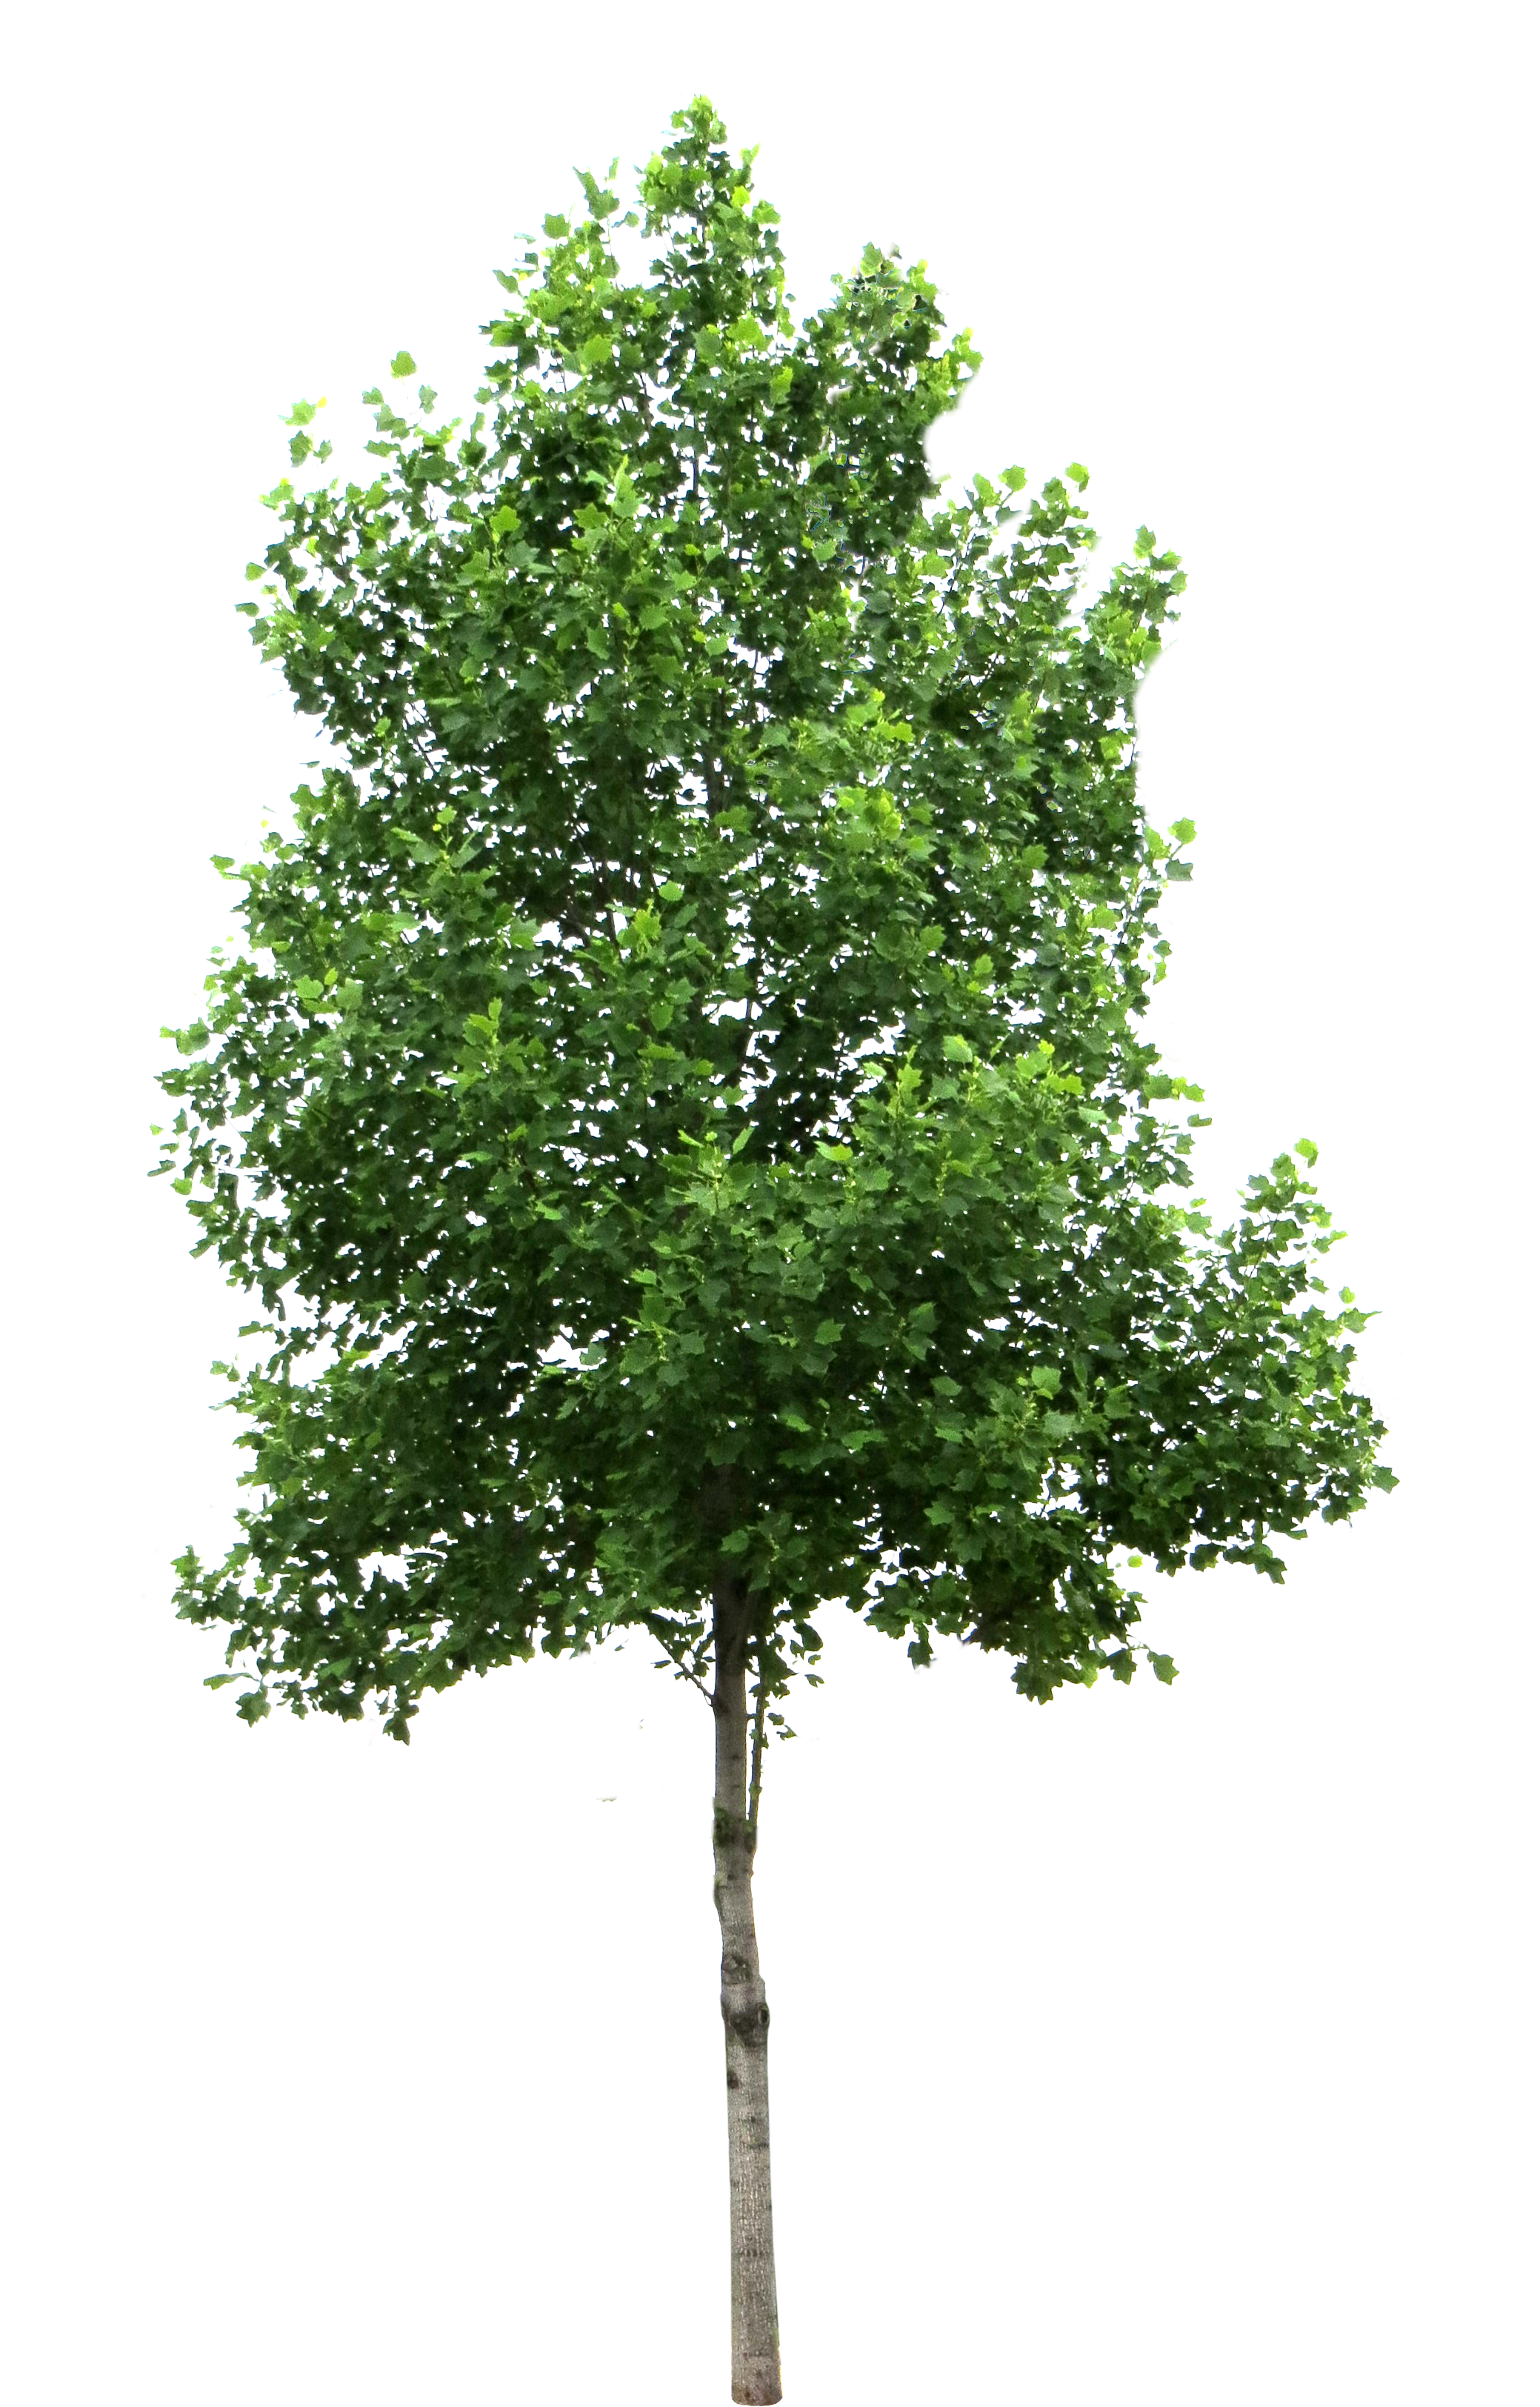 Arboles png photoshop. Free texture trees lugher